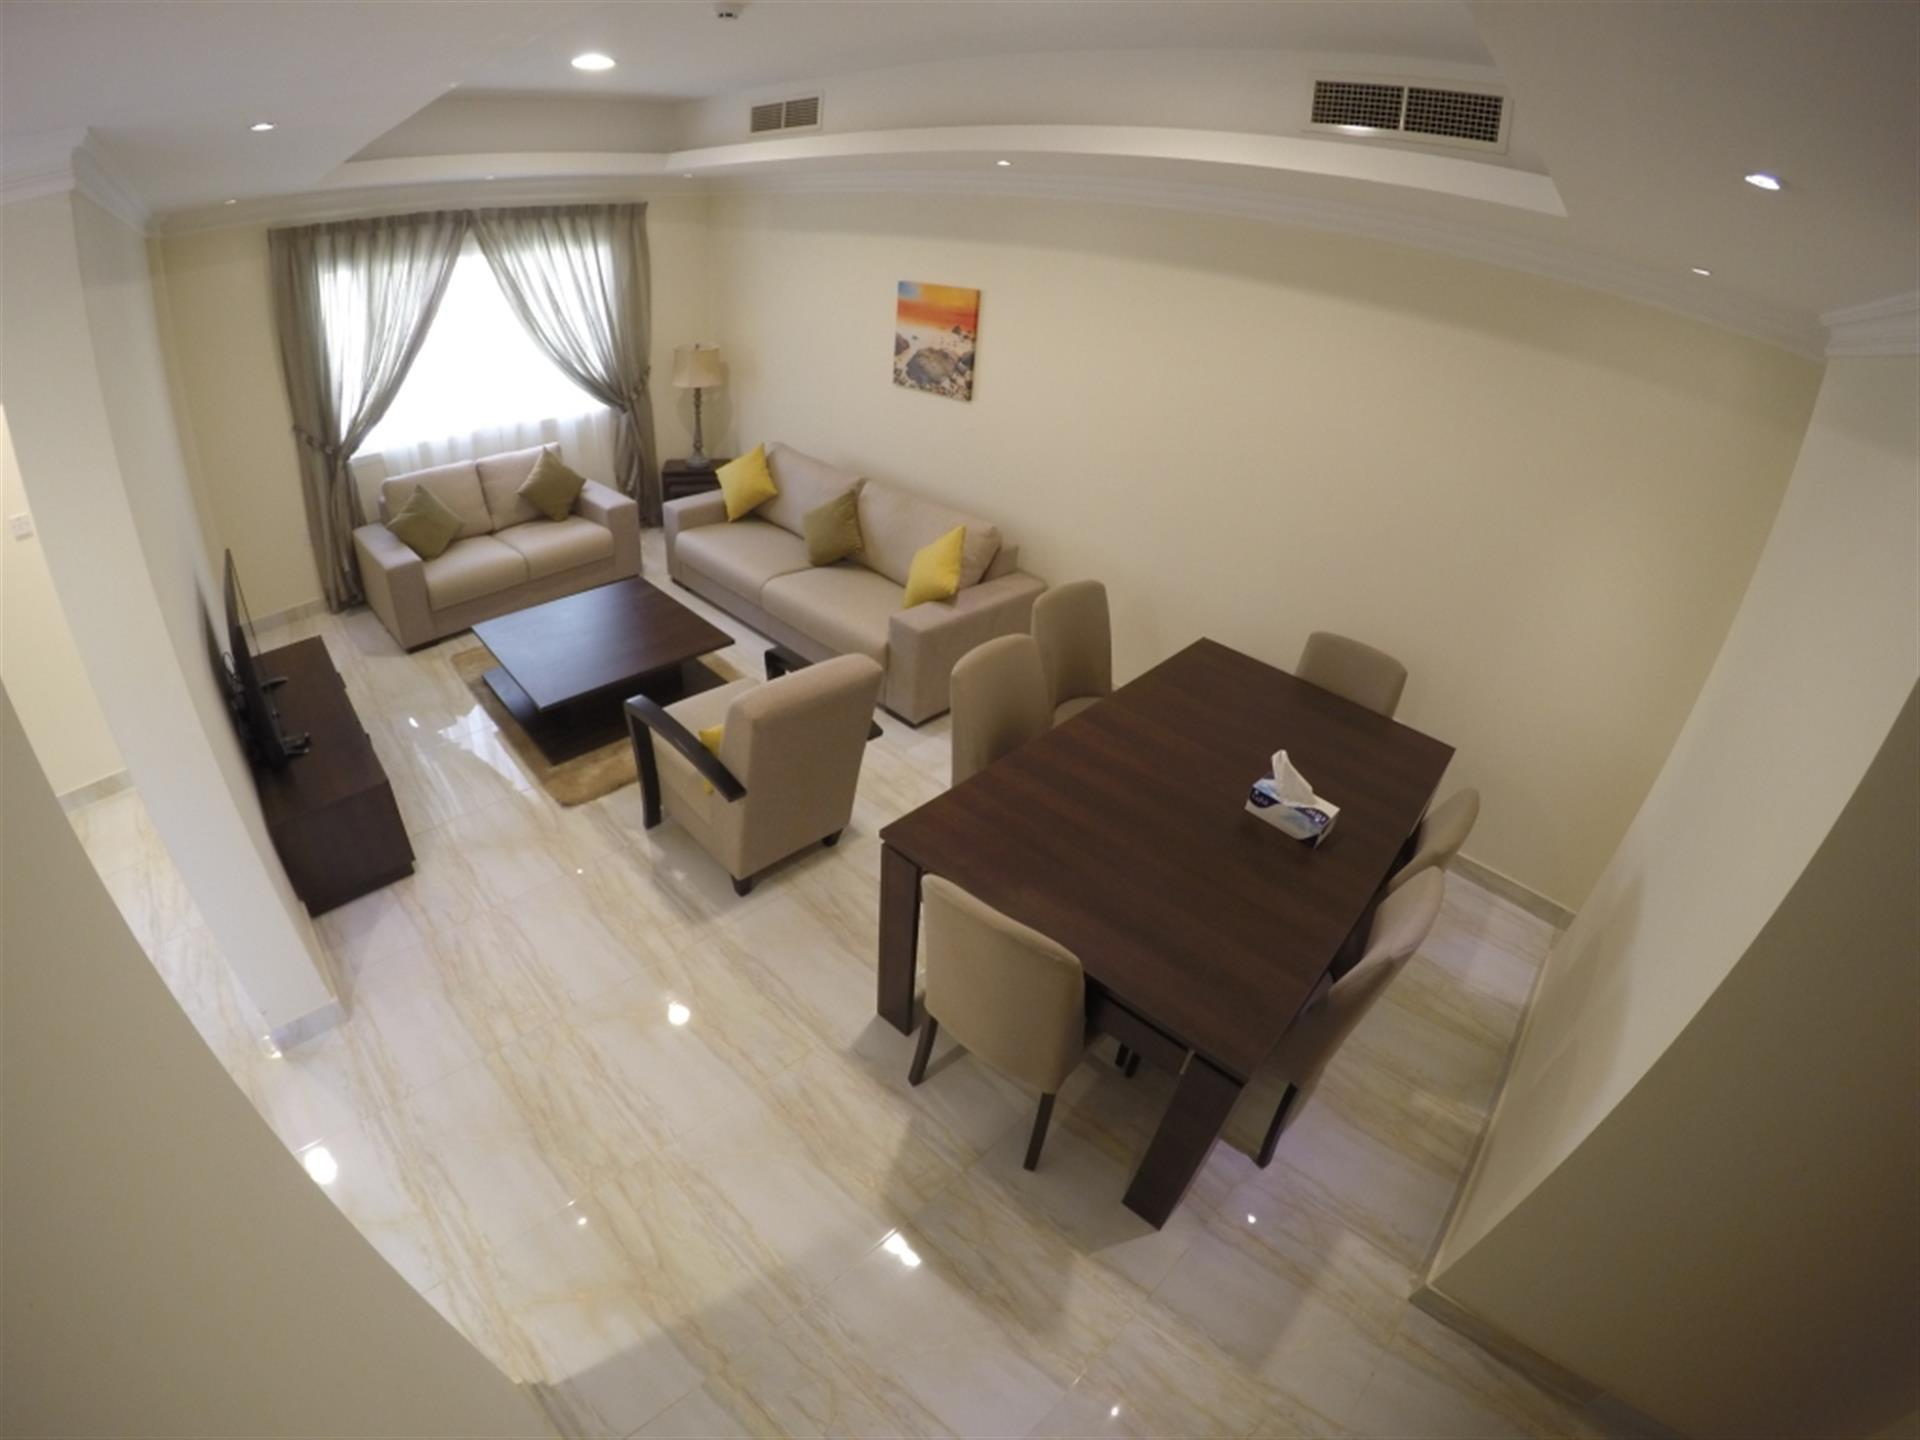 Fabulous 2 BR in Najma with 1 MONTH FREE offer